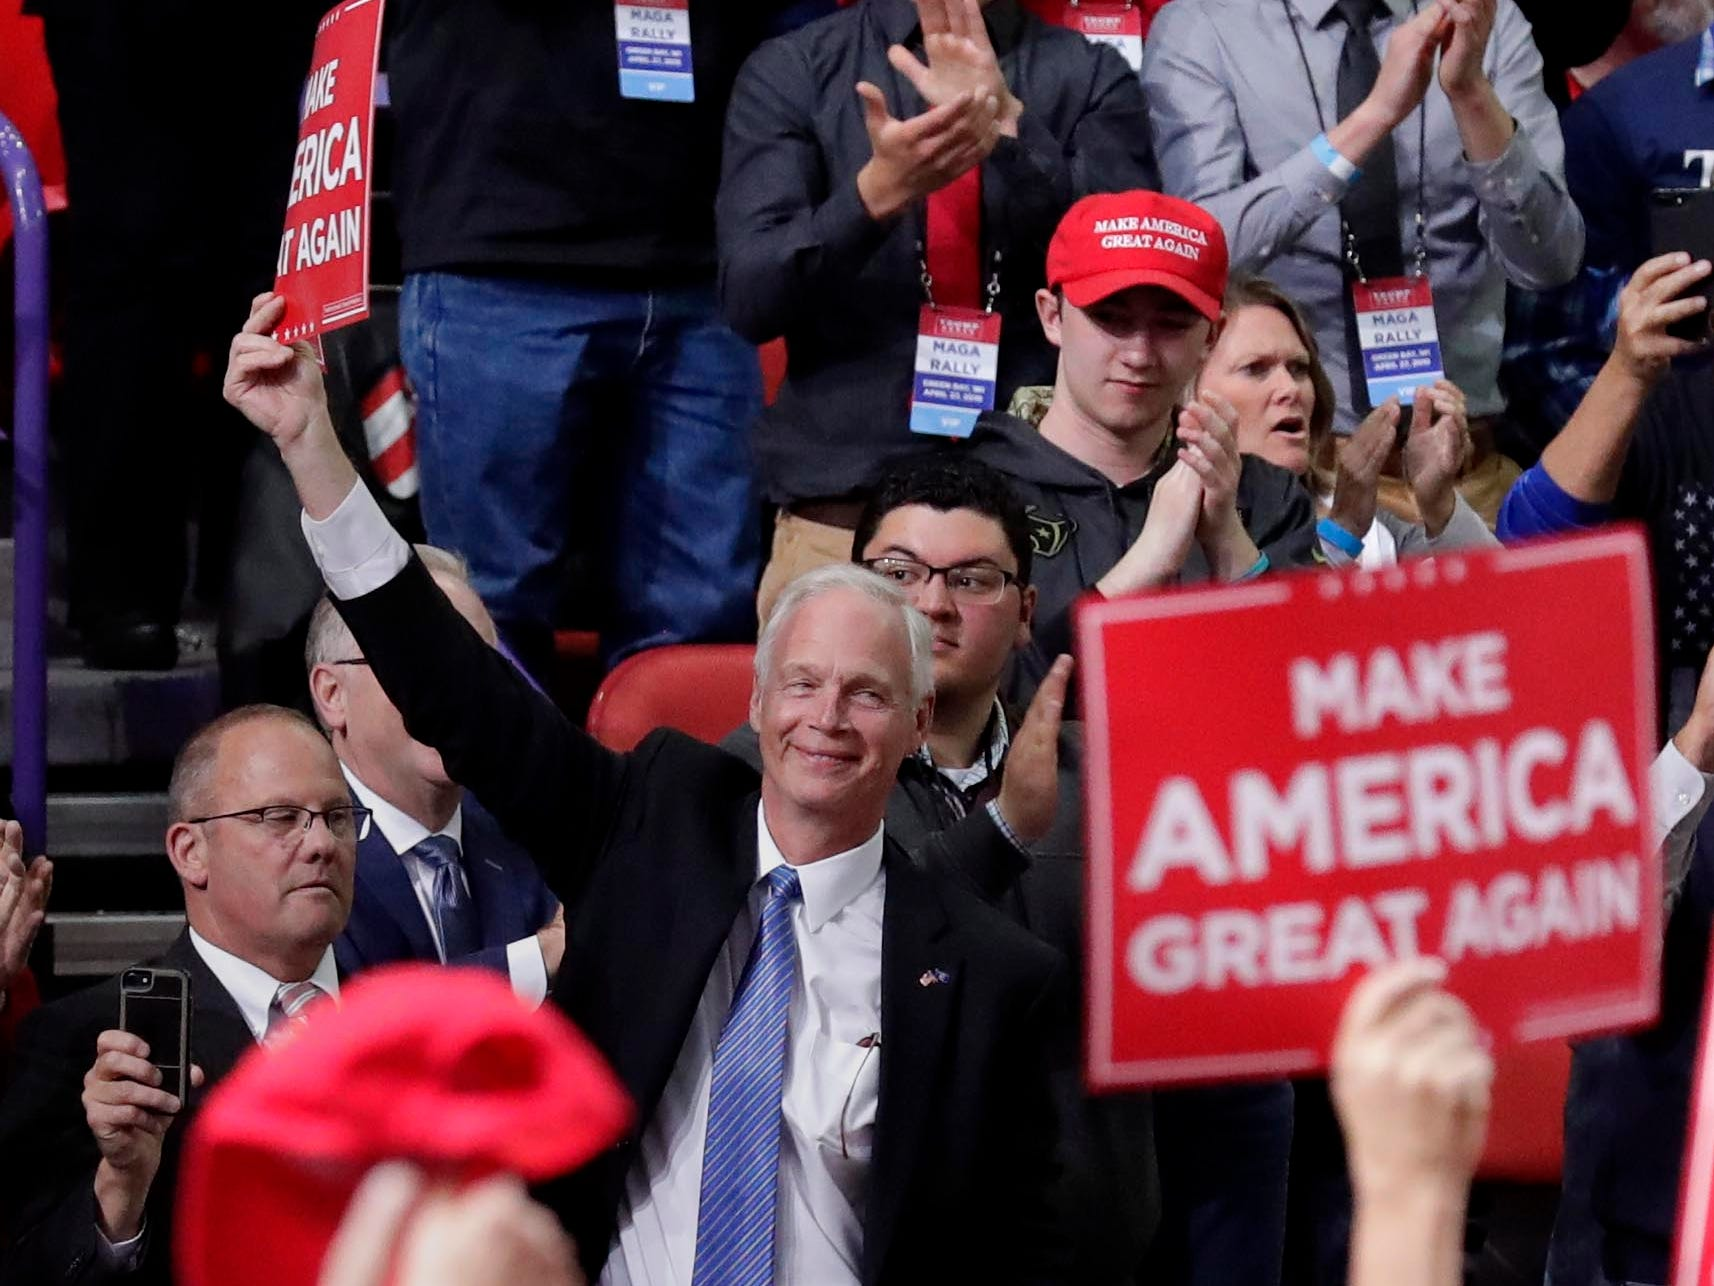 Wisconsin Senator Ron Johnson greets the crowd when introduced by President Donald Trump as he delivers a speech to supporters in Green Bay.